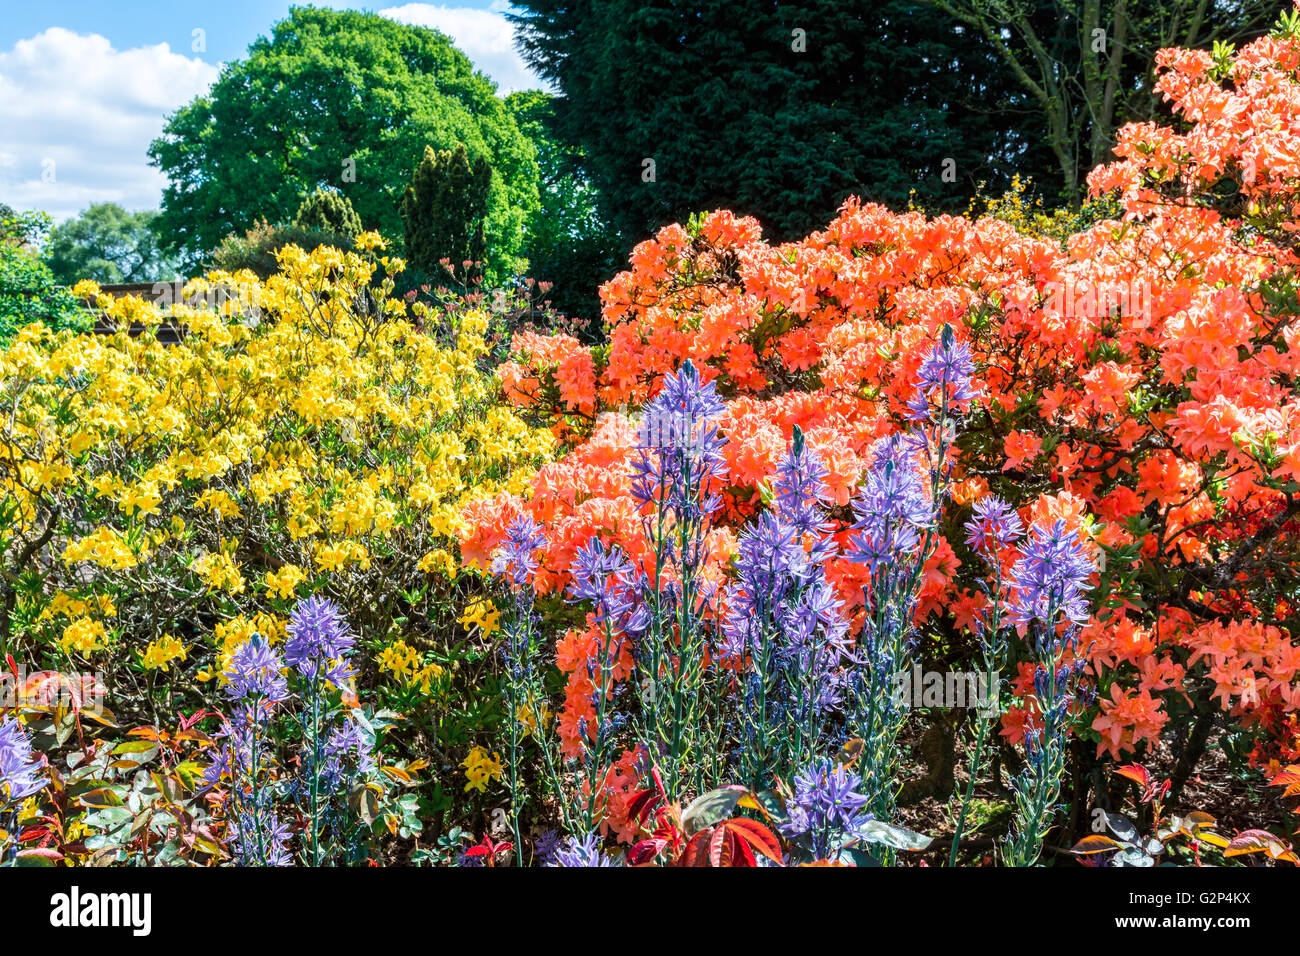 Flowering plants and shrubs in an English garden. - Stock Image